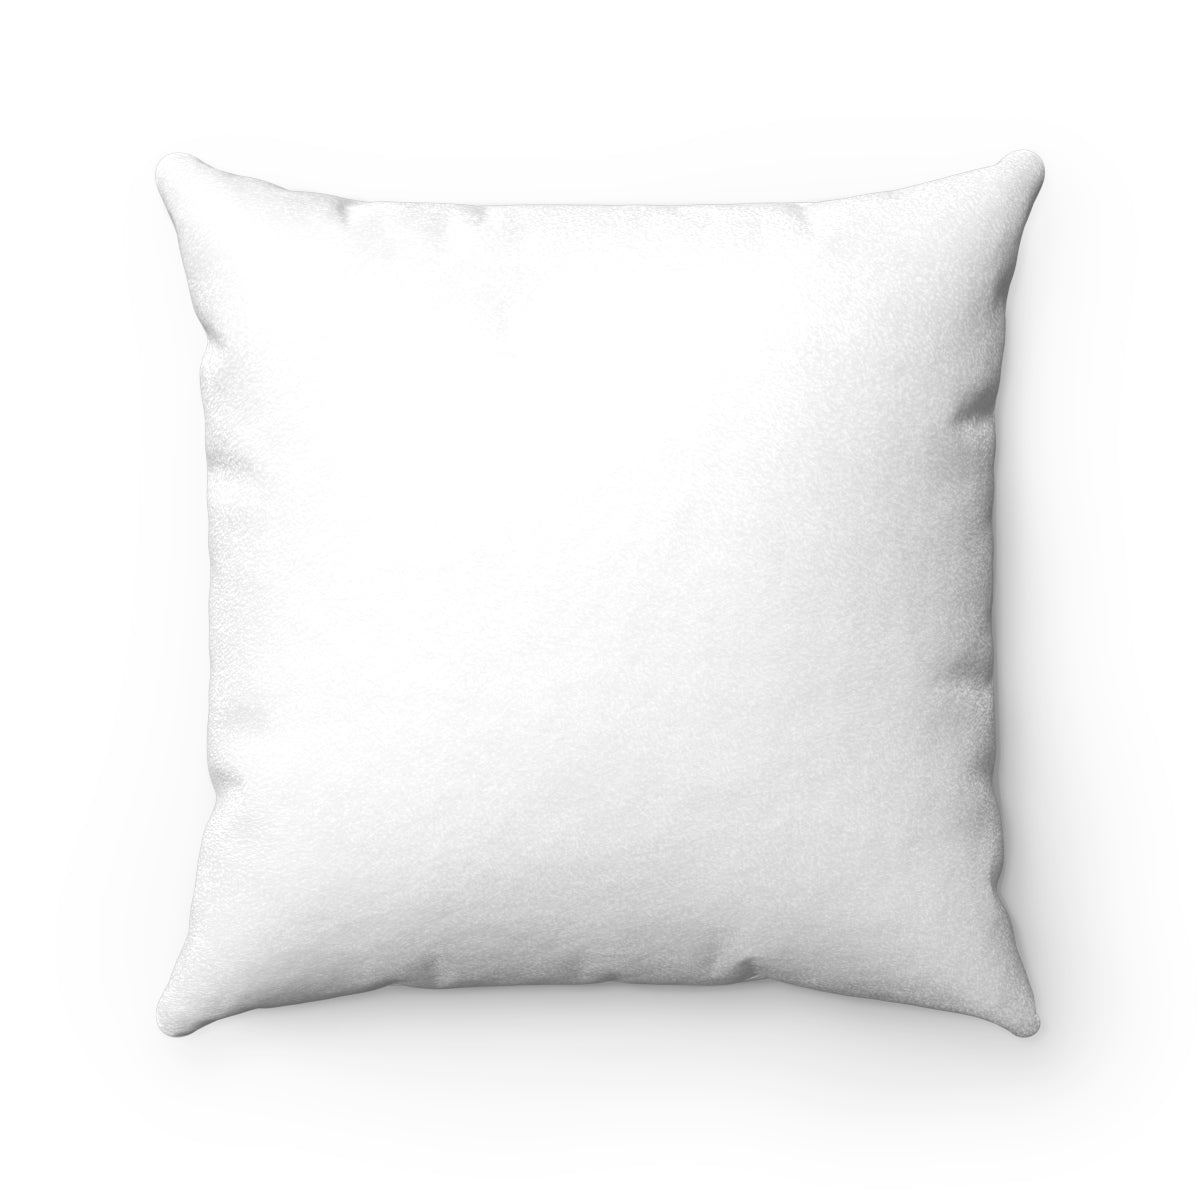 MRIR Faux Suede Square Pillow Case